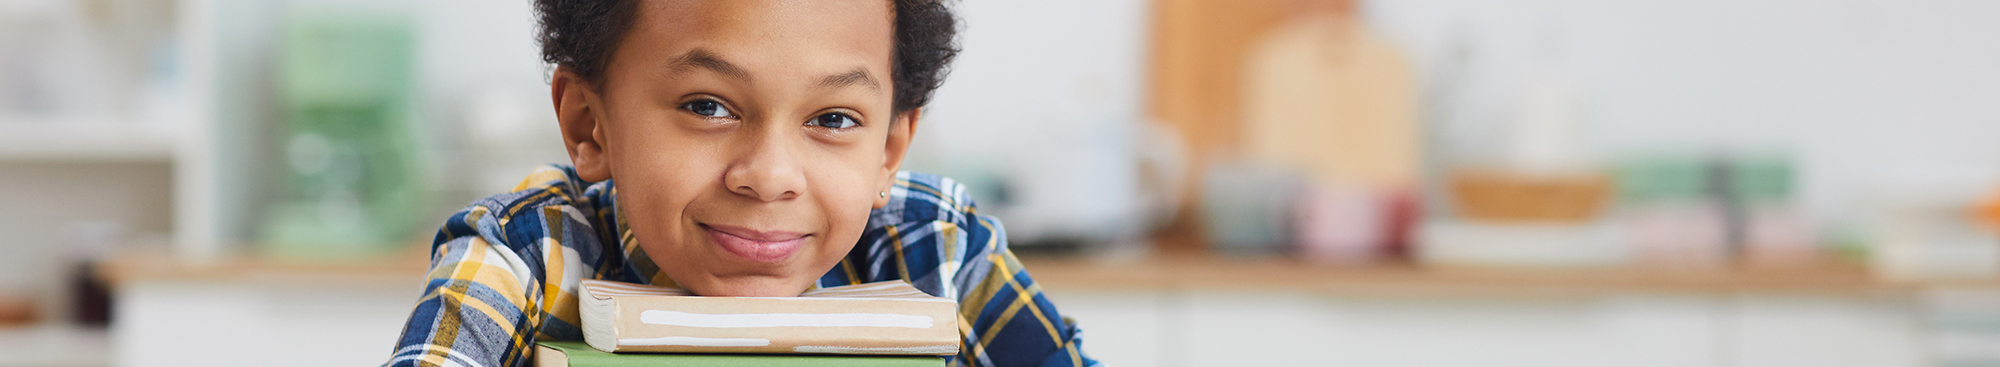 Close up of student sitting at a desk with books